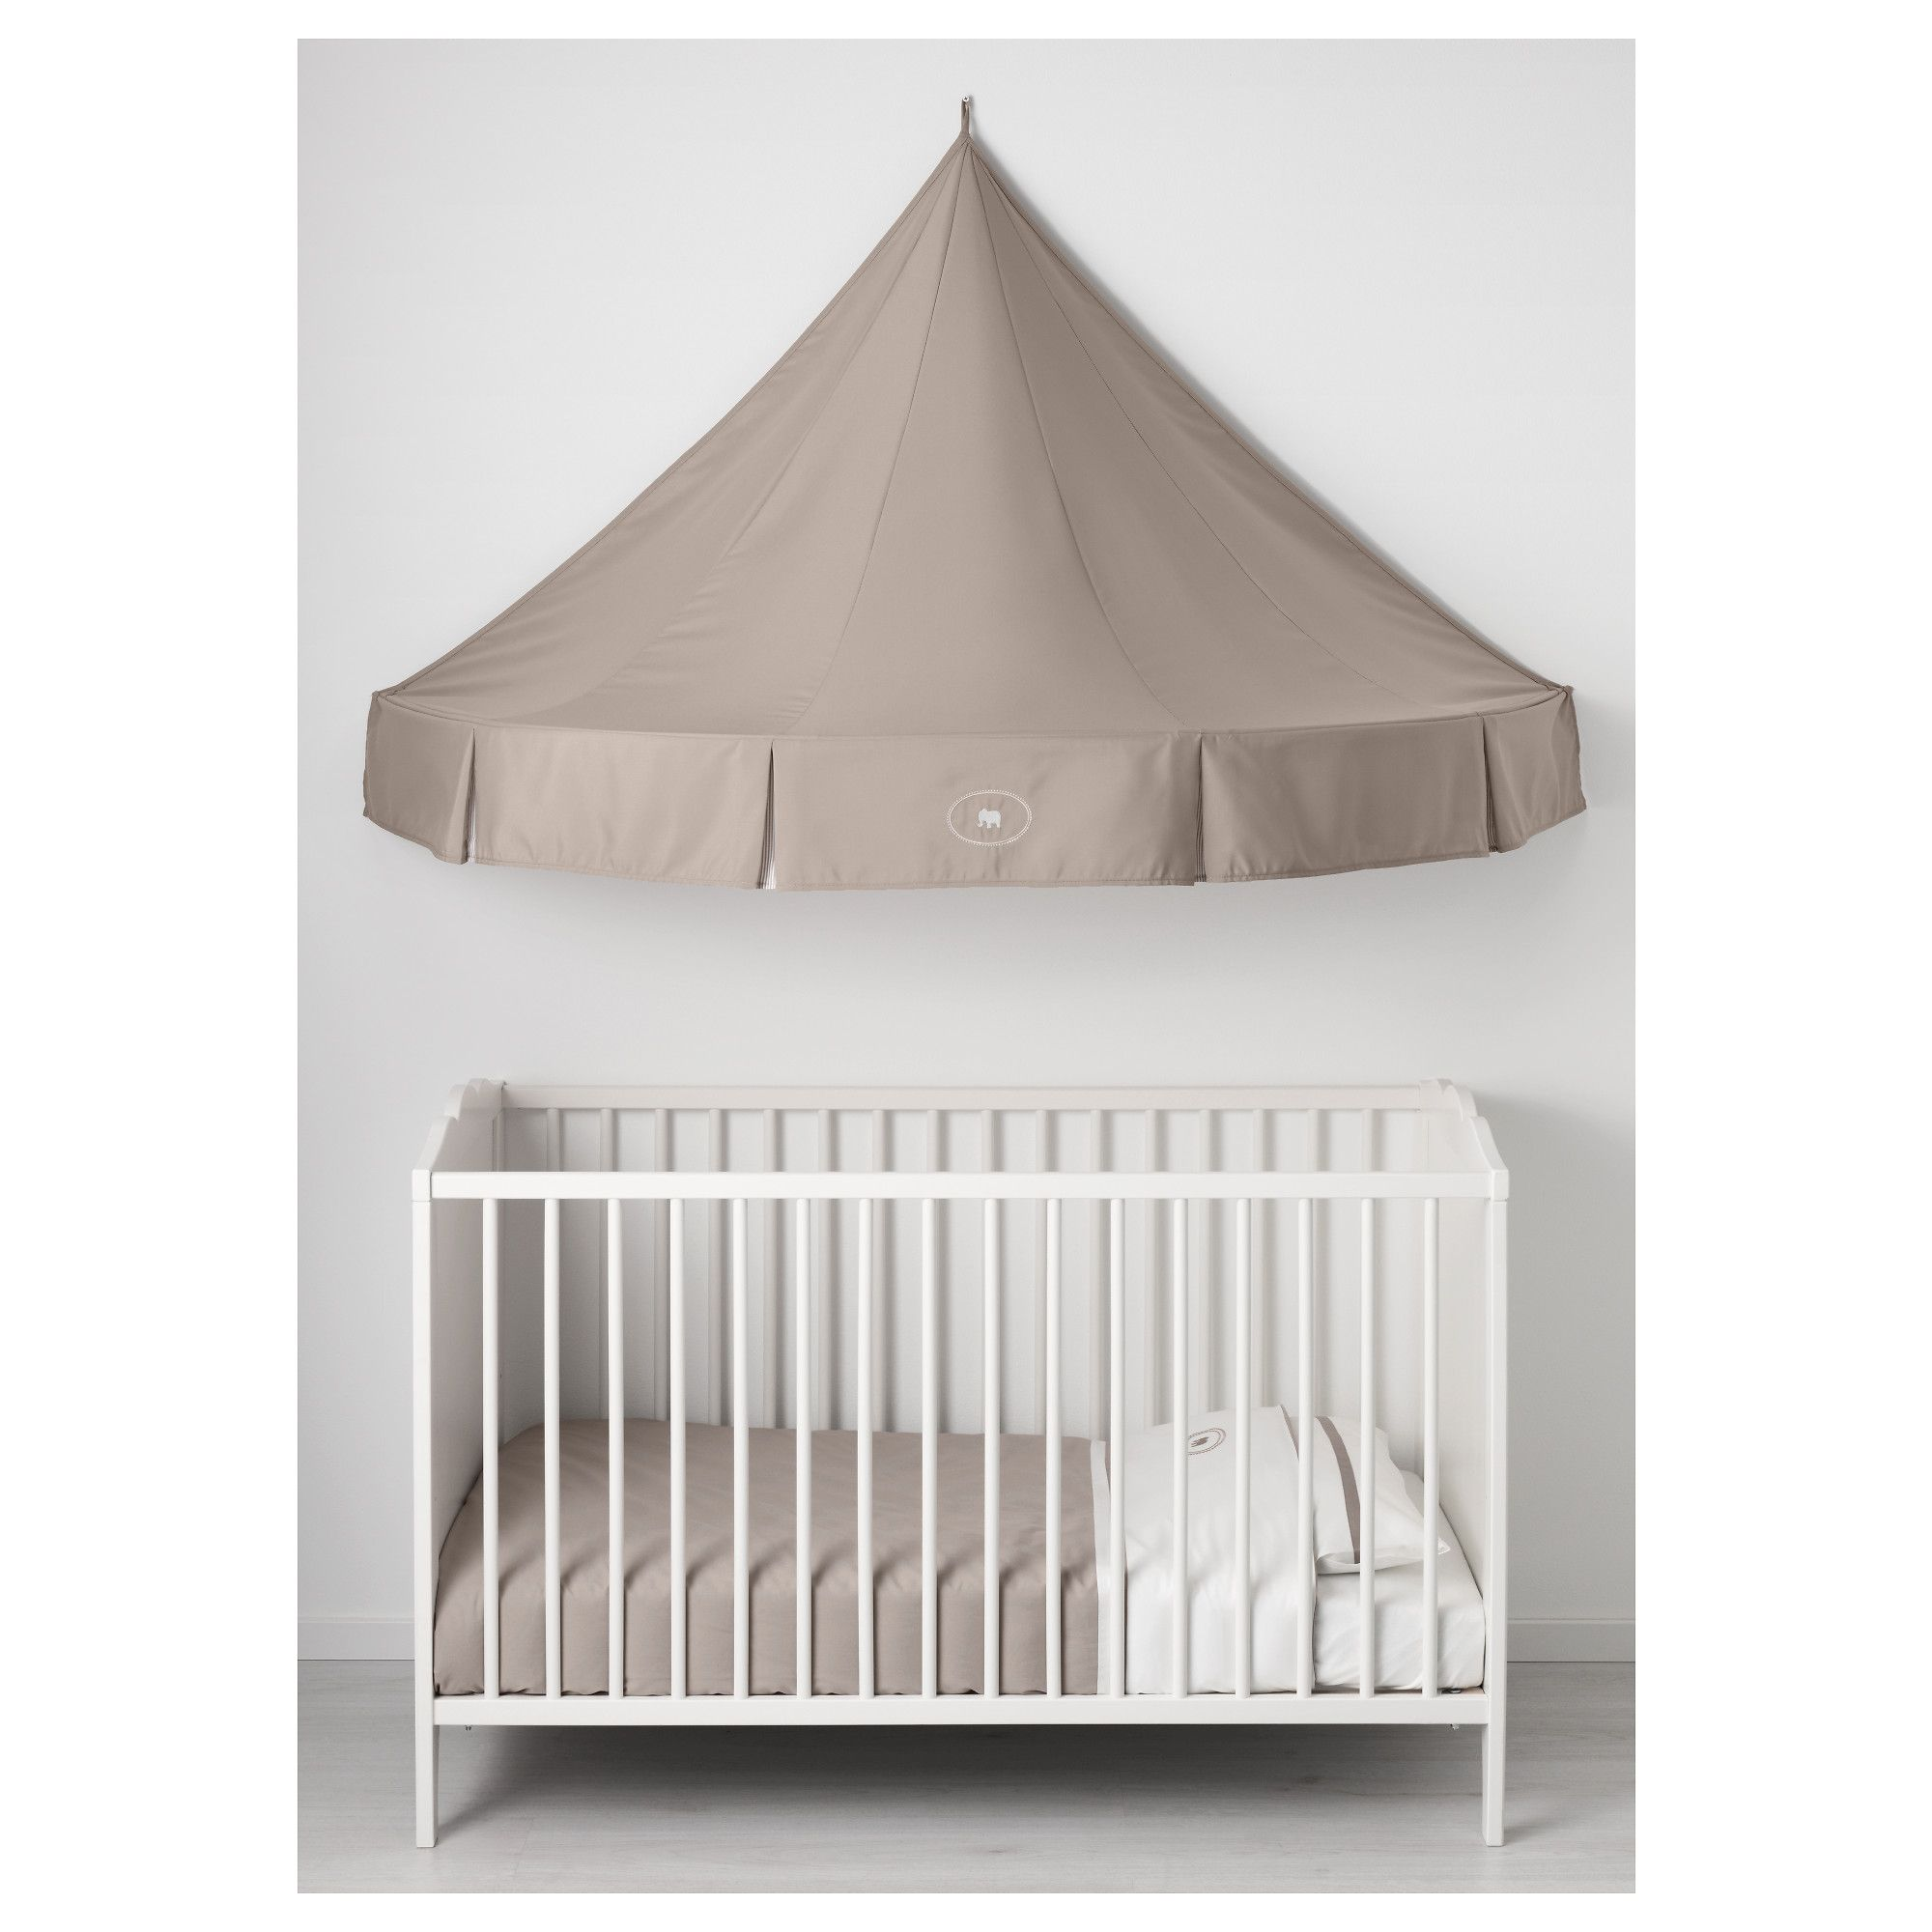 Children's Bed Tents & Canopies